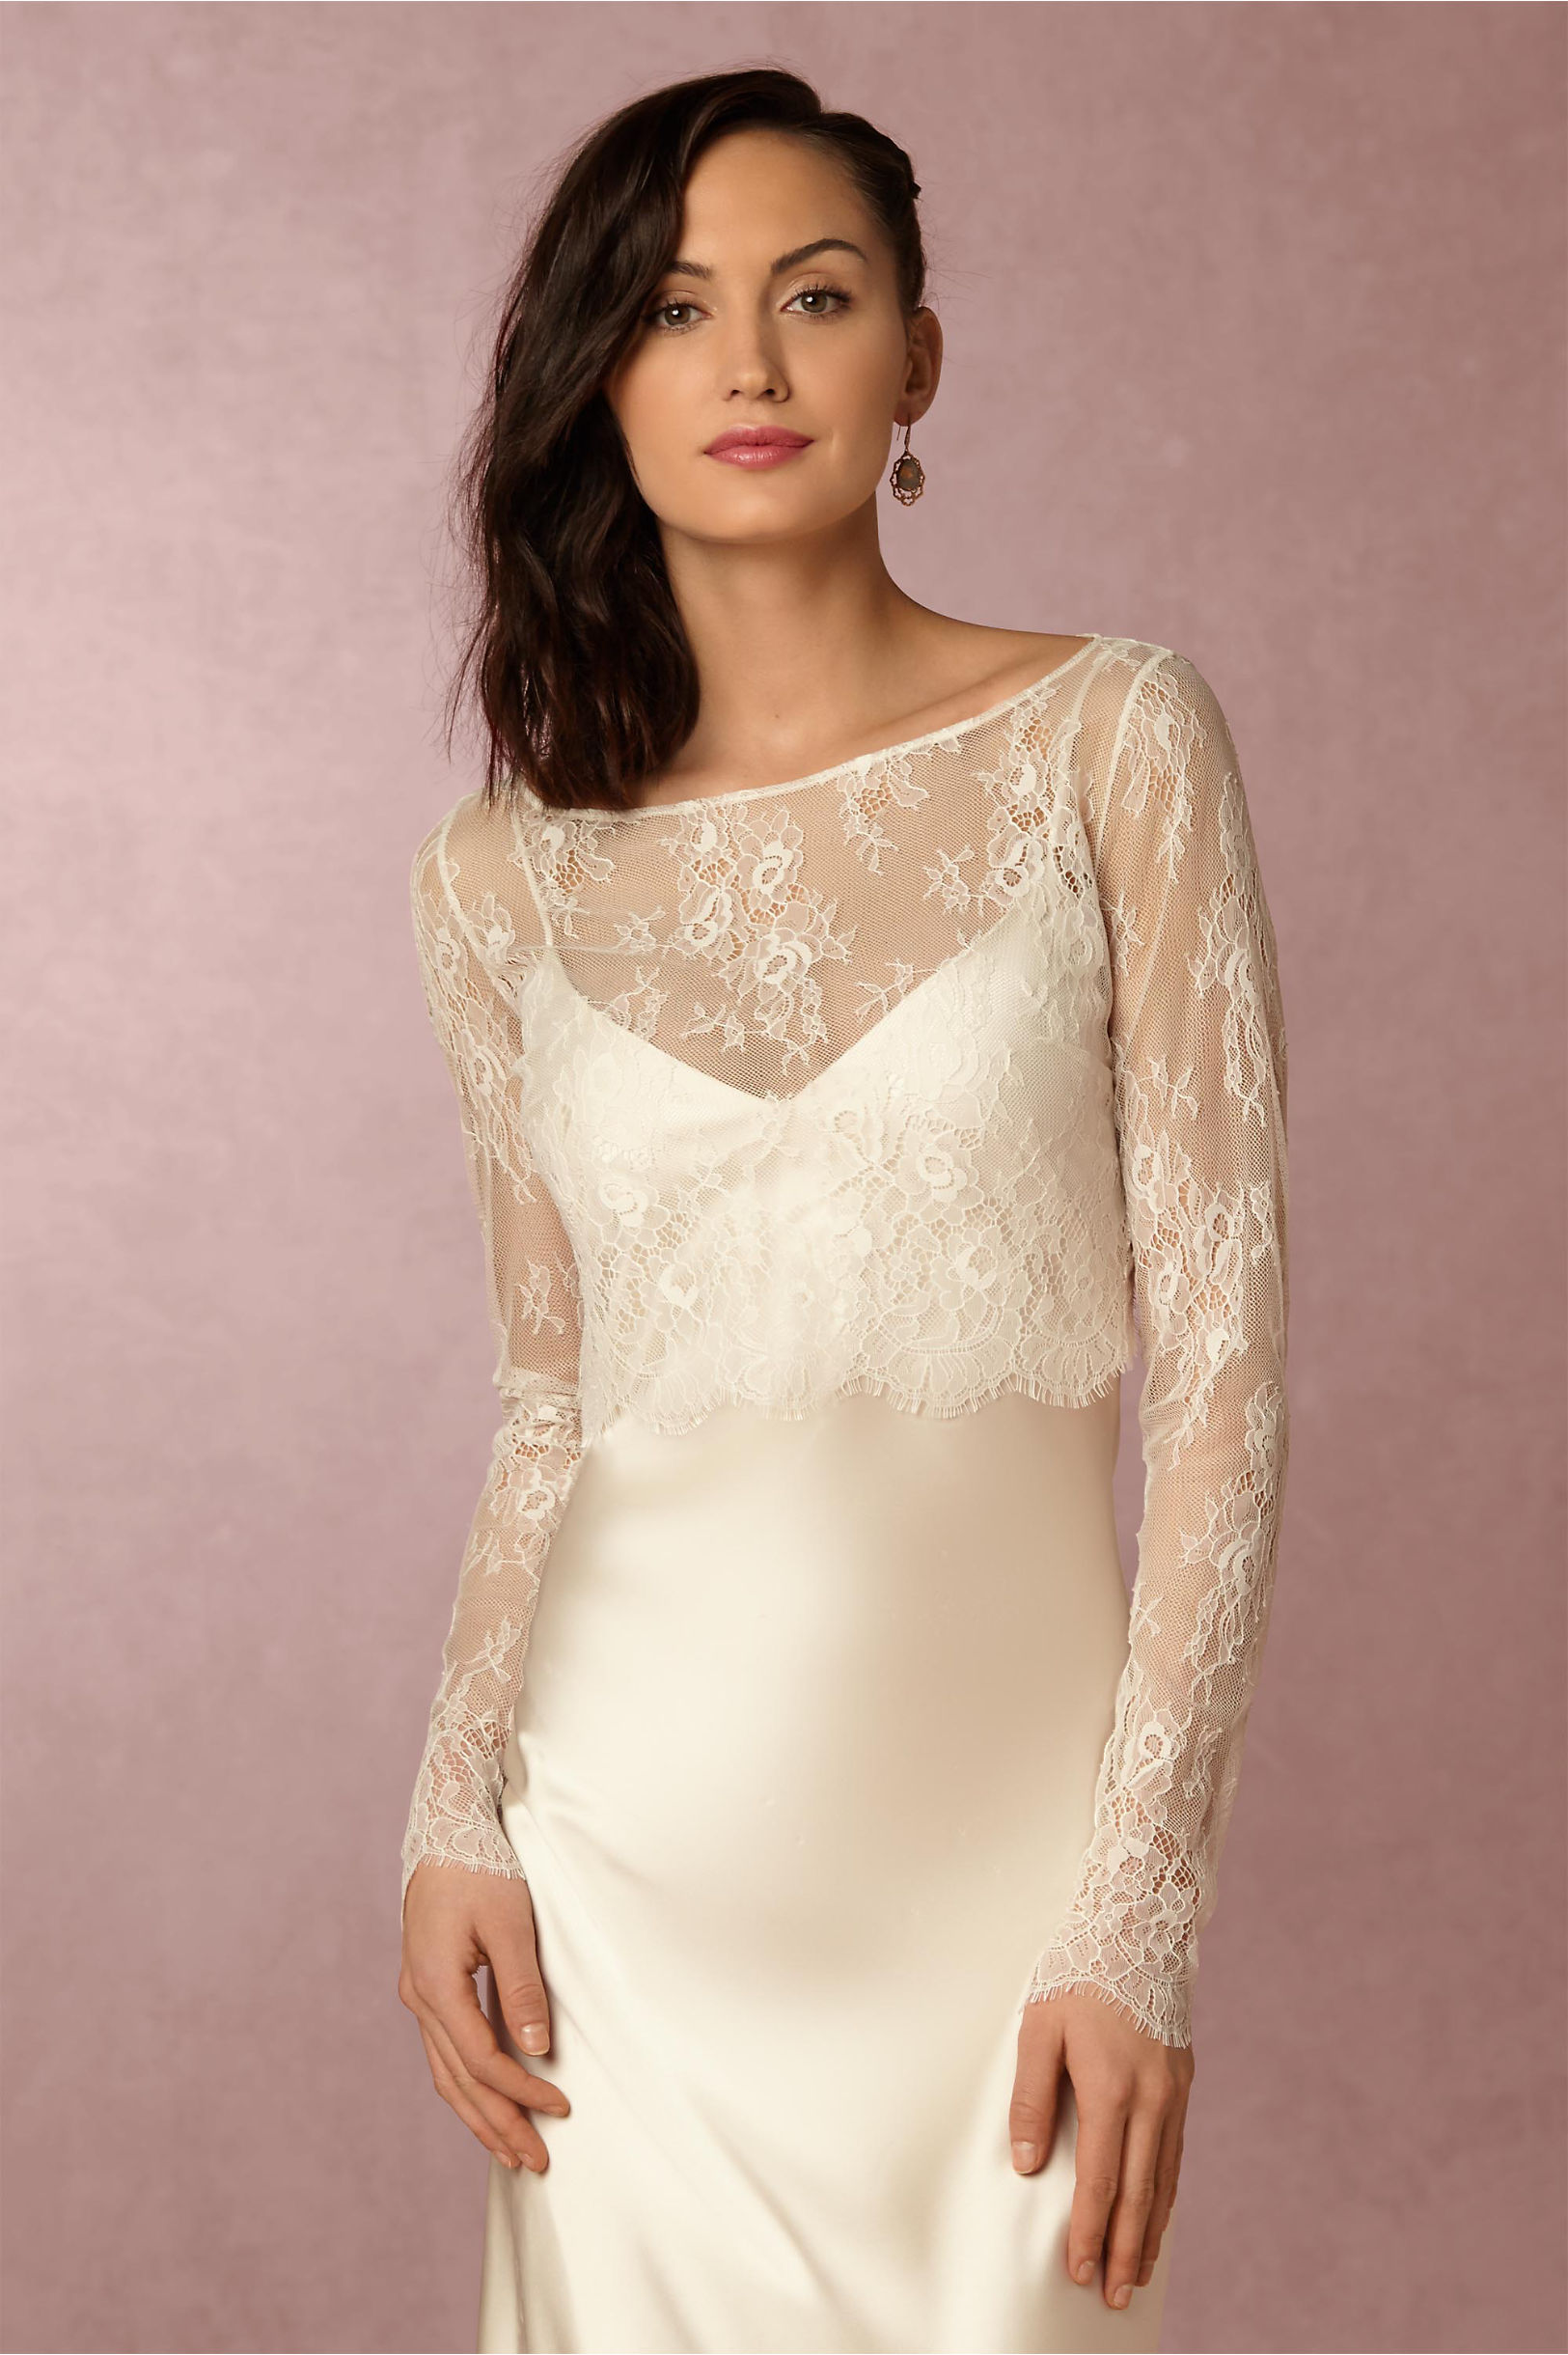 Lace Toppers For Wedding Dresses Dresses For Wedding